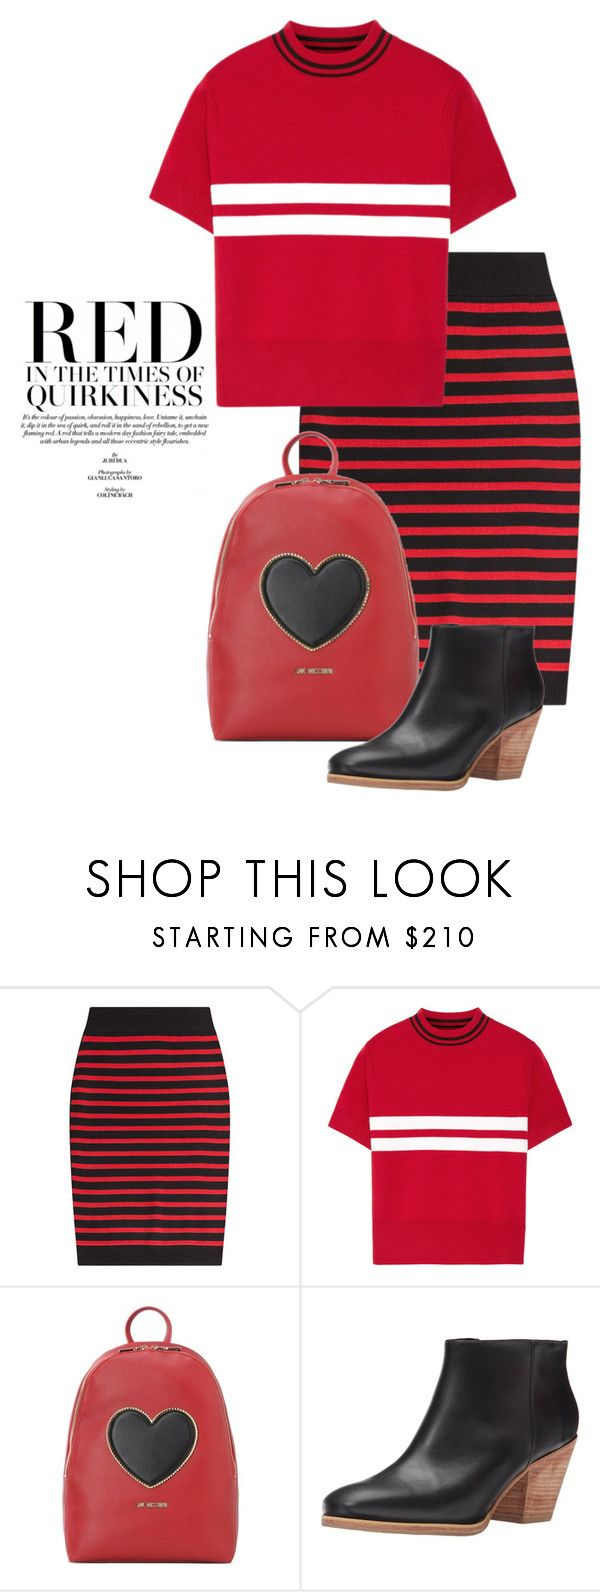 """Sep 5th (tfp) 2153"" by boxthoughts ❤ liked on Polyvore featuring Marc by Marc Jacobs, Tim Coppens, Love Moschino, Rachel Comey and tfp"